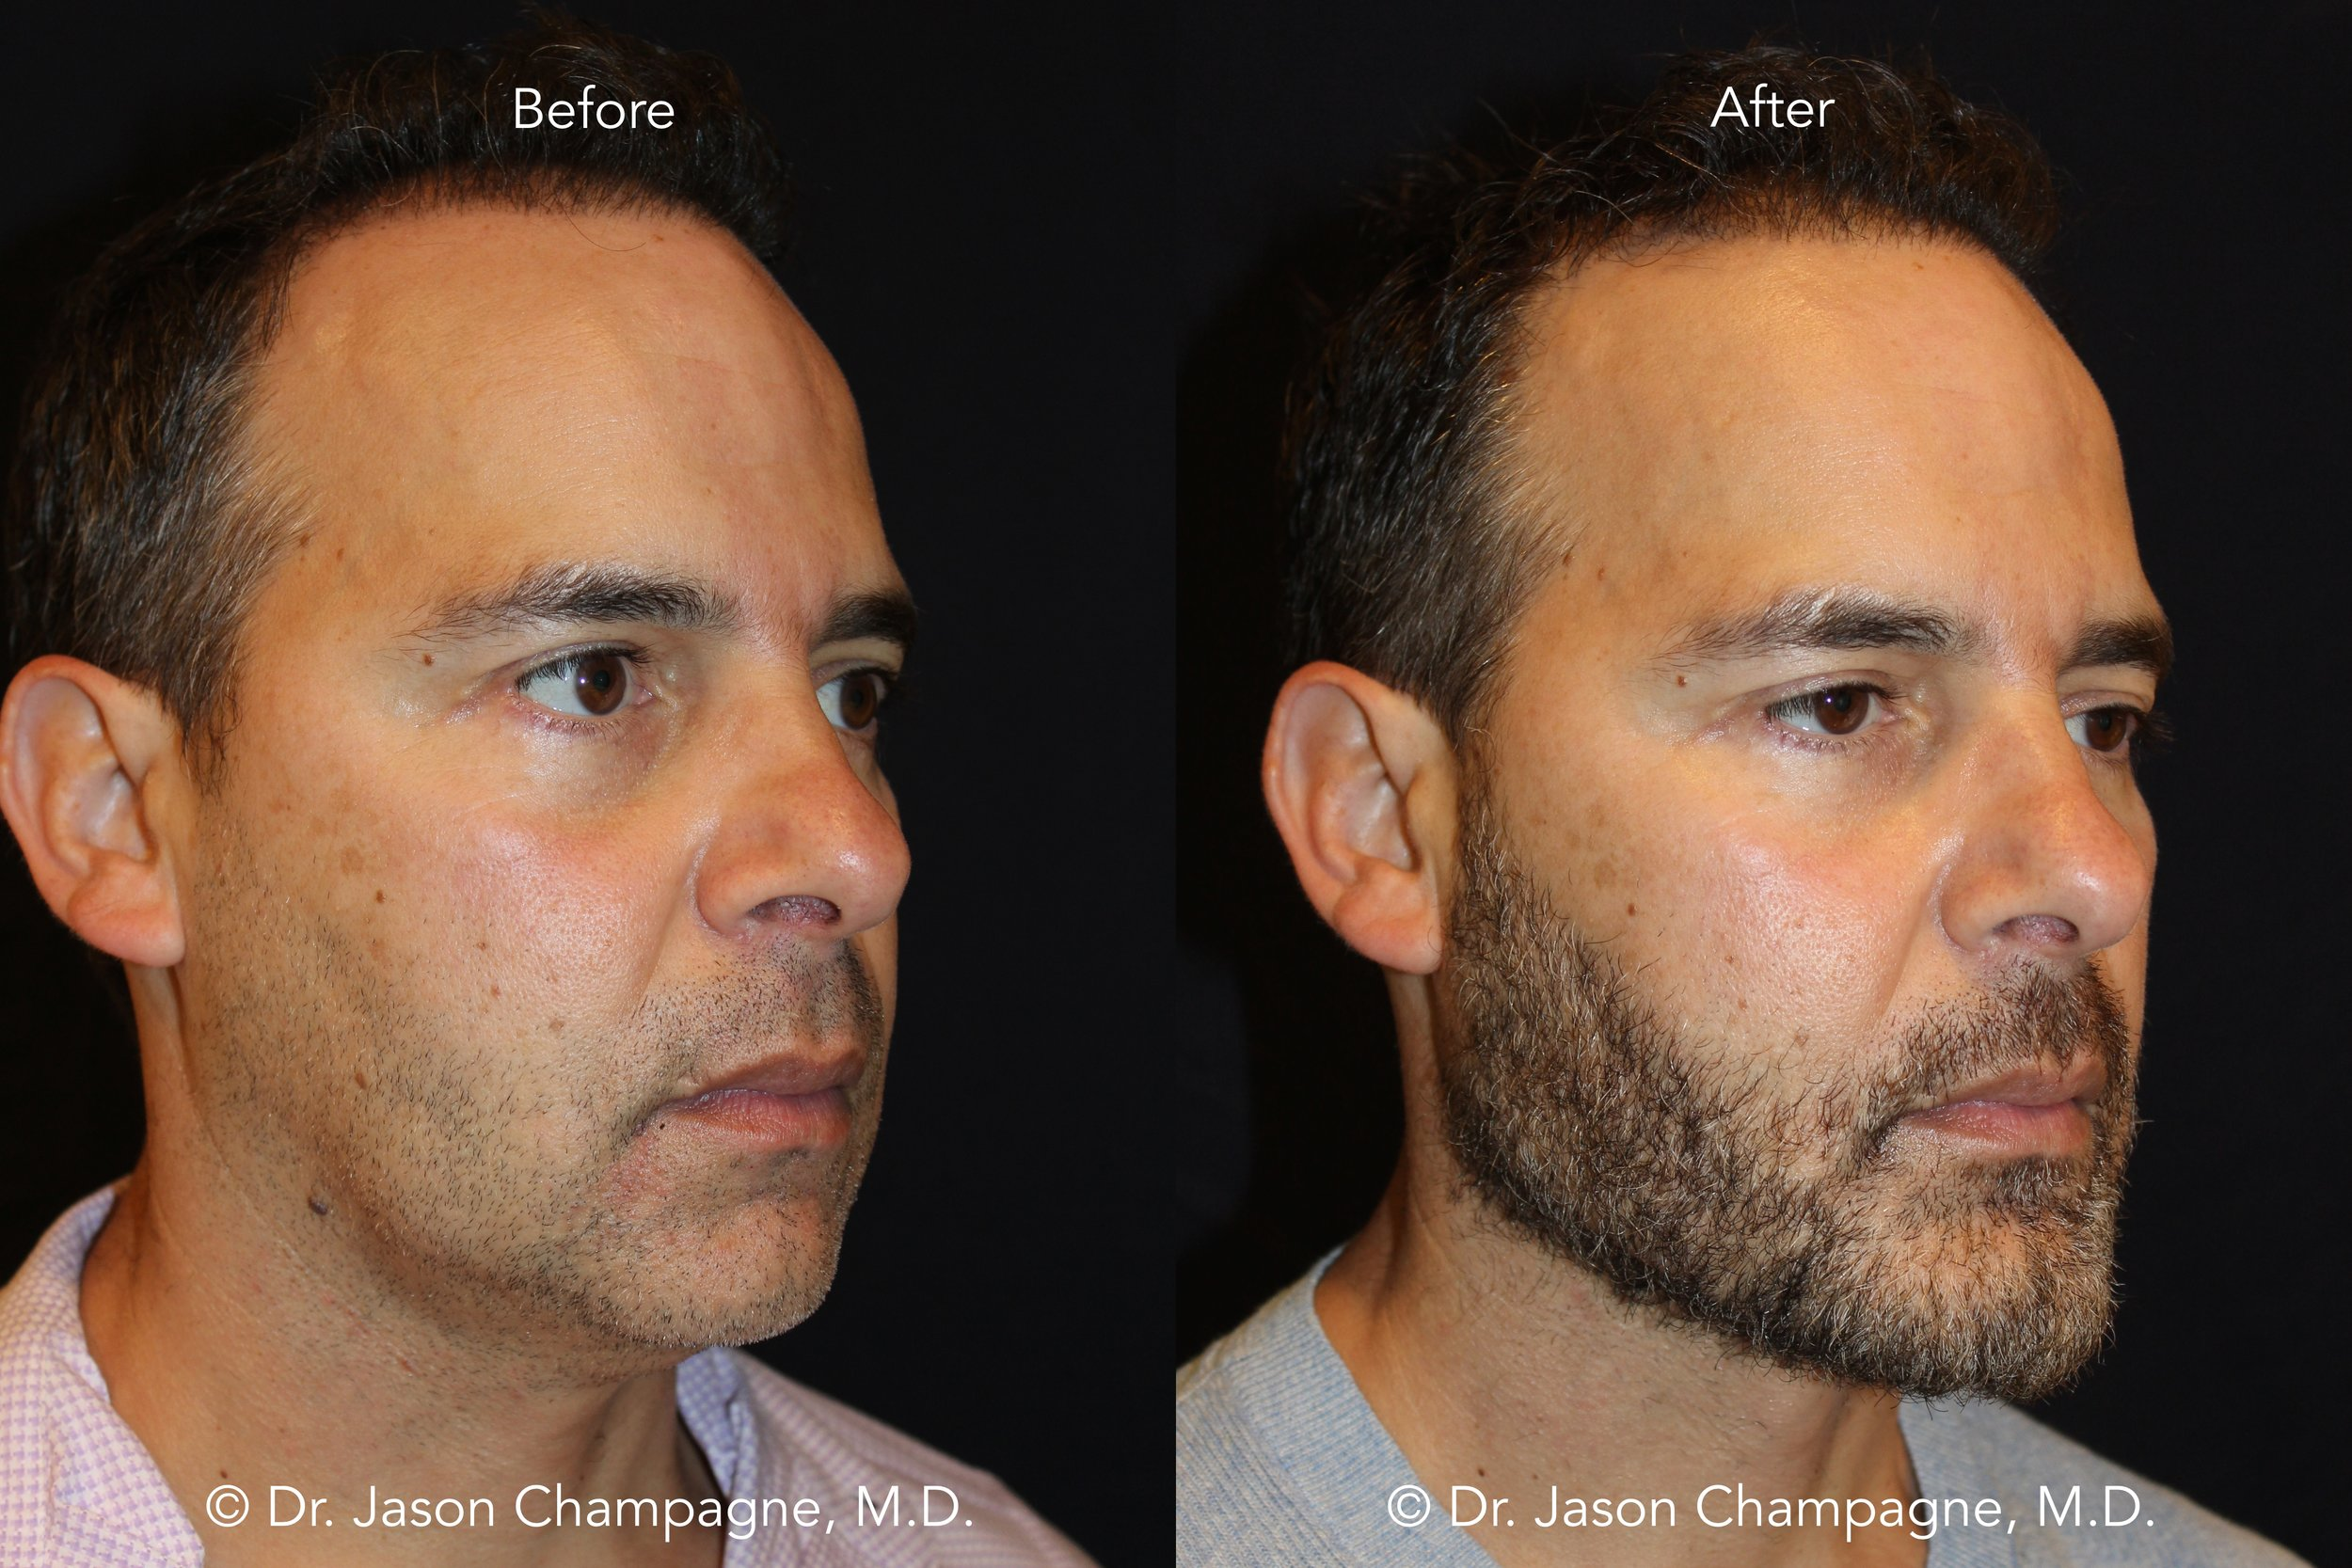 Custom-Chin-and-Jaw-Before-and-After-3:4.jpg